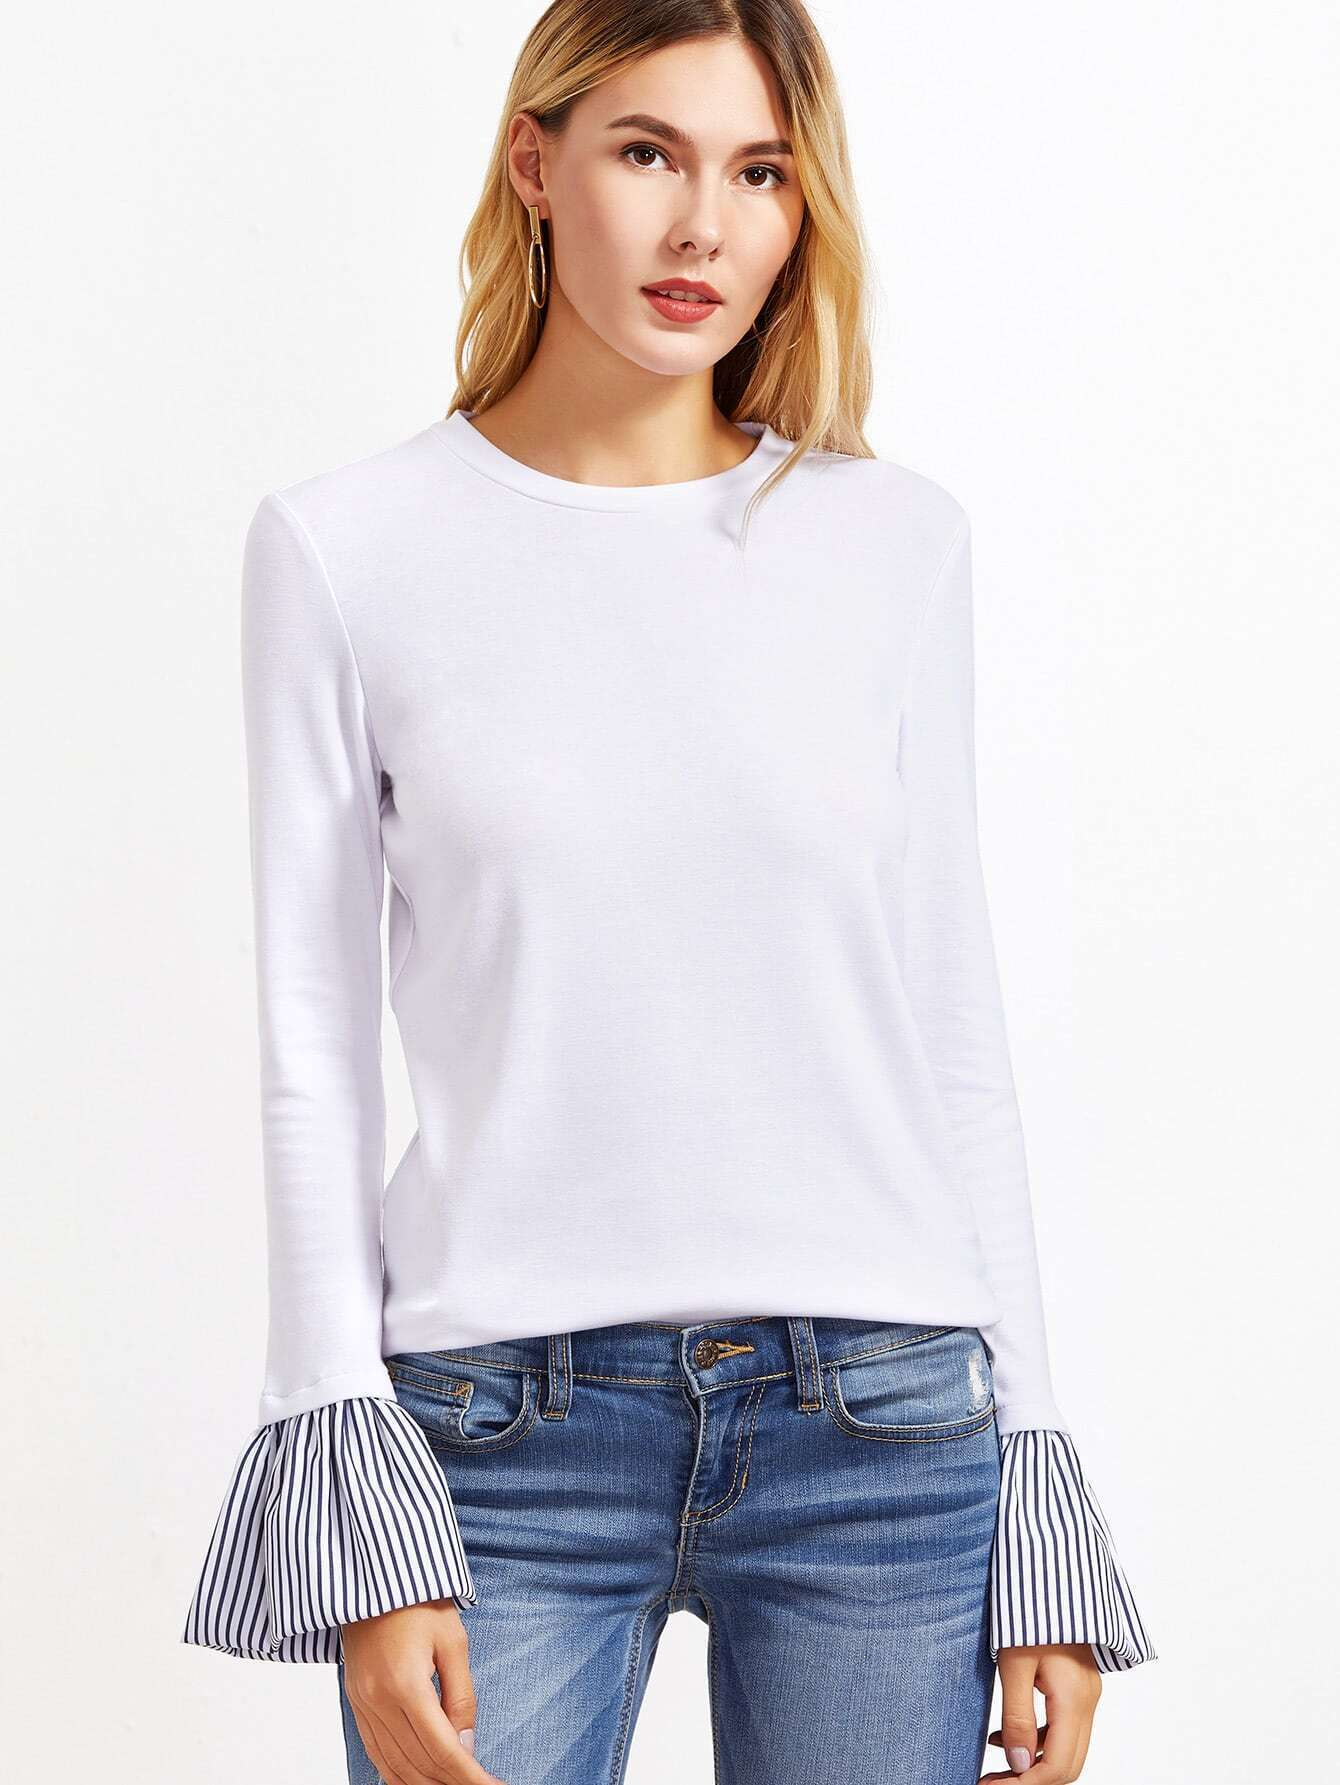 Long Sleeve T-Shirts, Shop Women's T-Shirts Cheap Online | SheIn.com